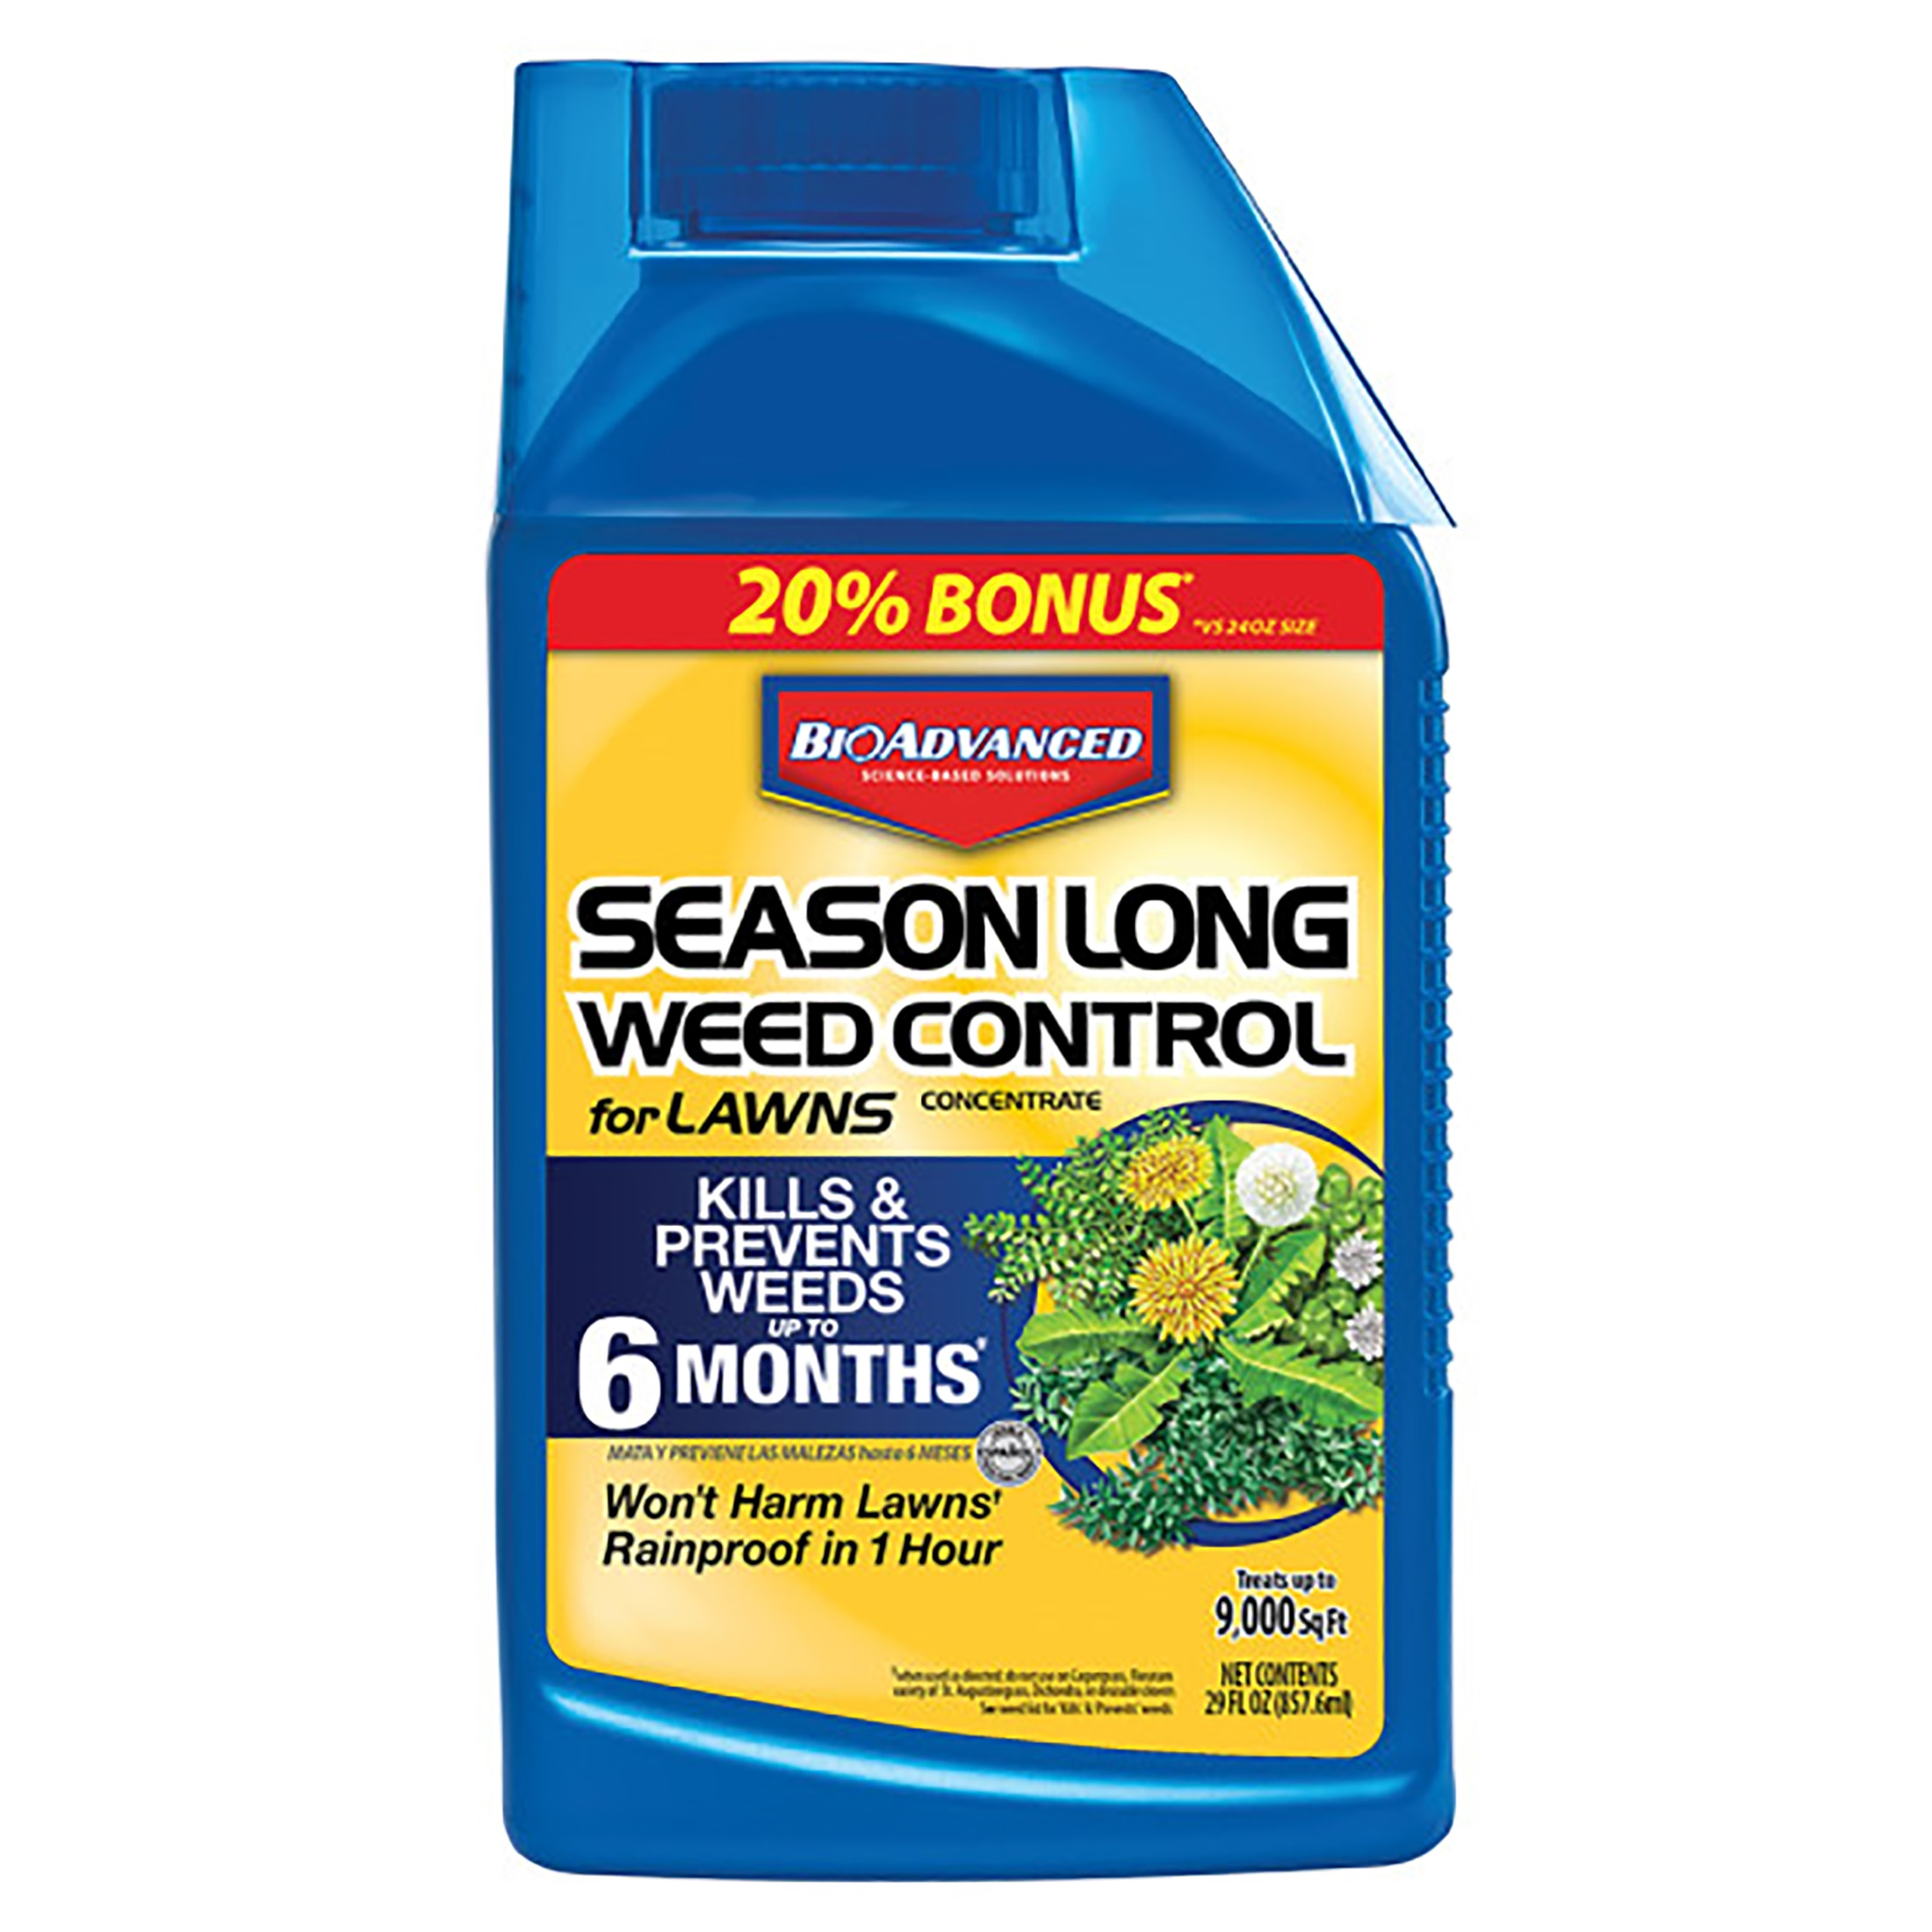 Picture of BioAdvanced 704050B Weed Control, Liquid, Spray Application, 24 oz Package